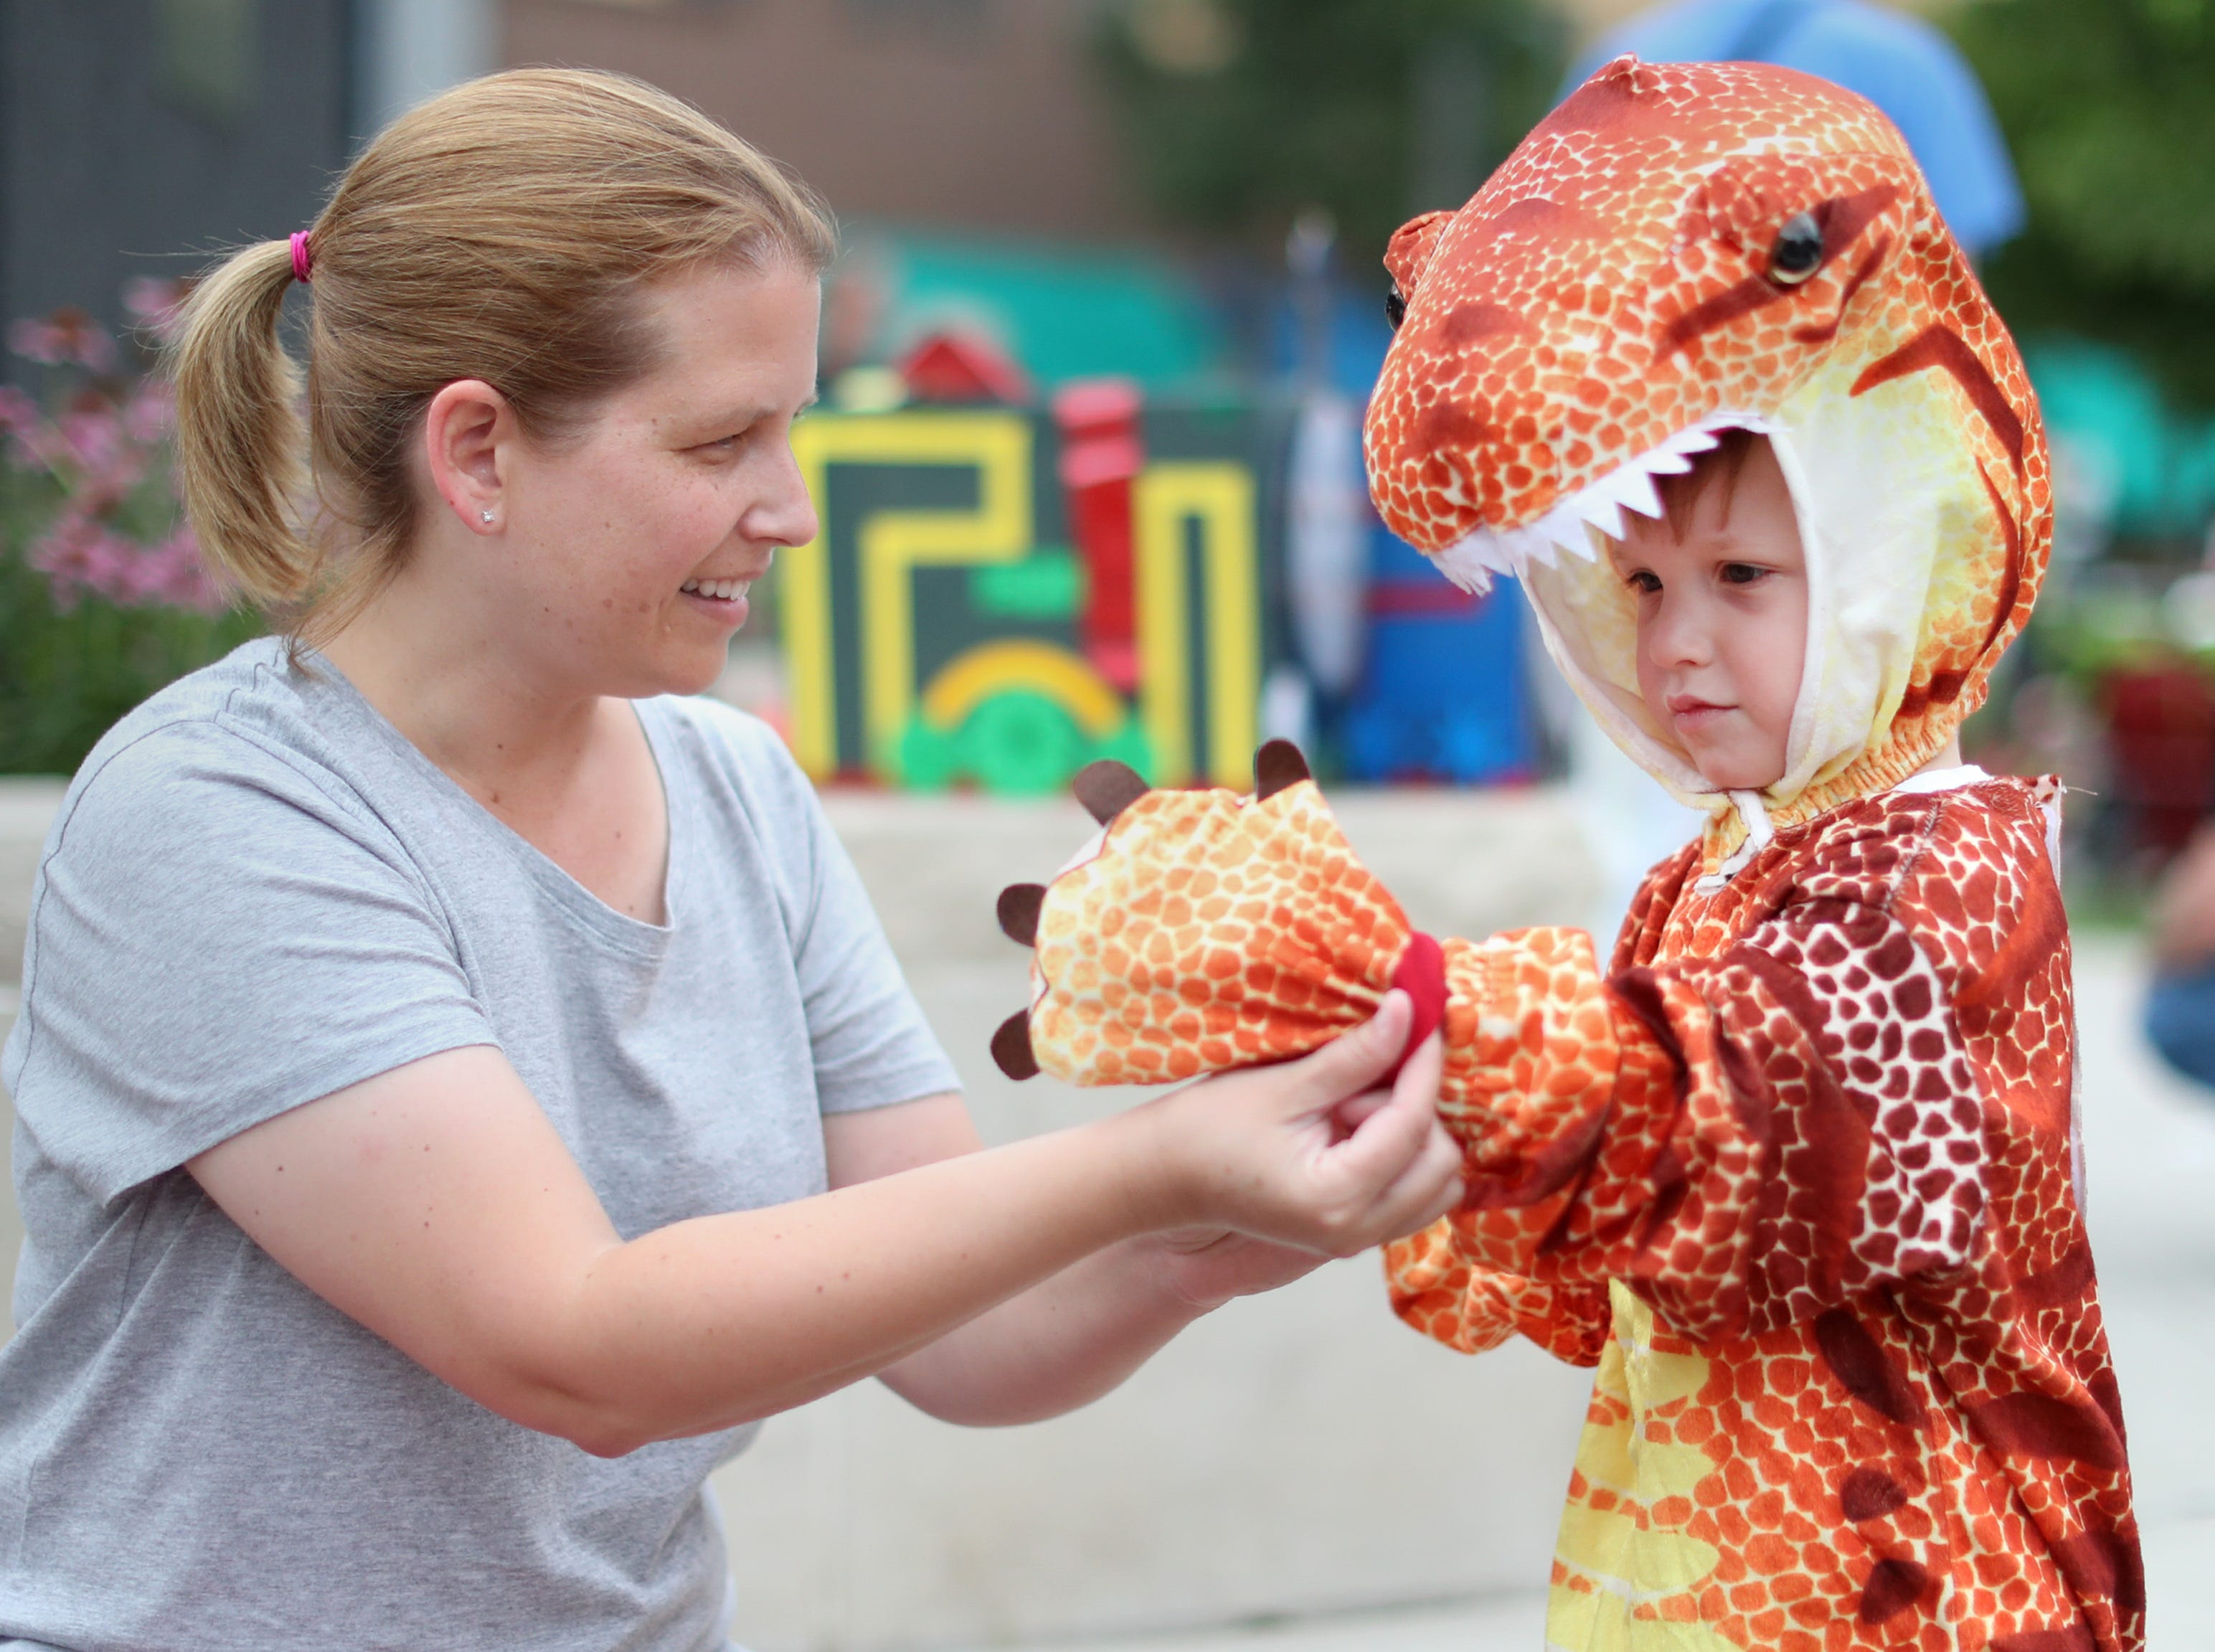 Mara Hendrickson helps her son Max, 3, put on his dinosaur glove during the 10th annual ChildrenÕs Parade Wednesday, July 25, 2018, in Appleton, Wis. Danny Damiani/USA TODAY NETWORK-Wisconsin